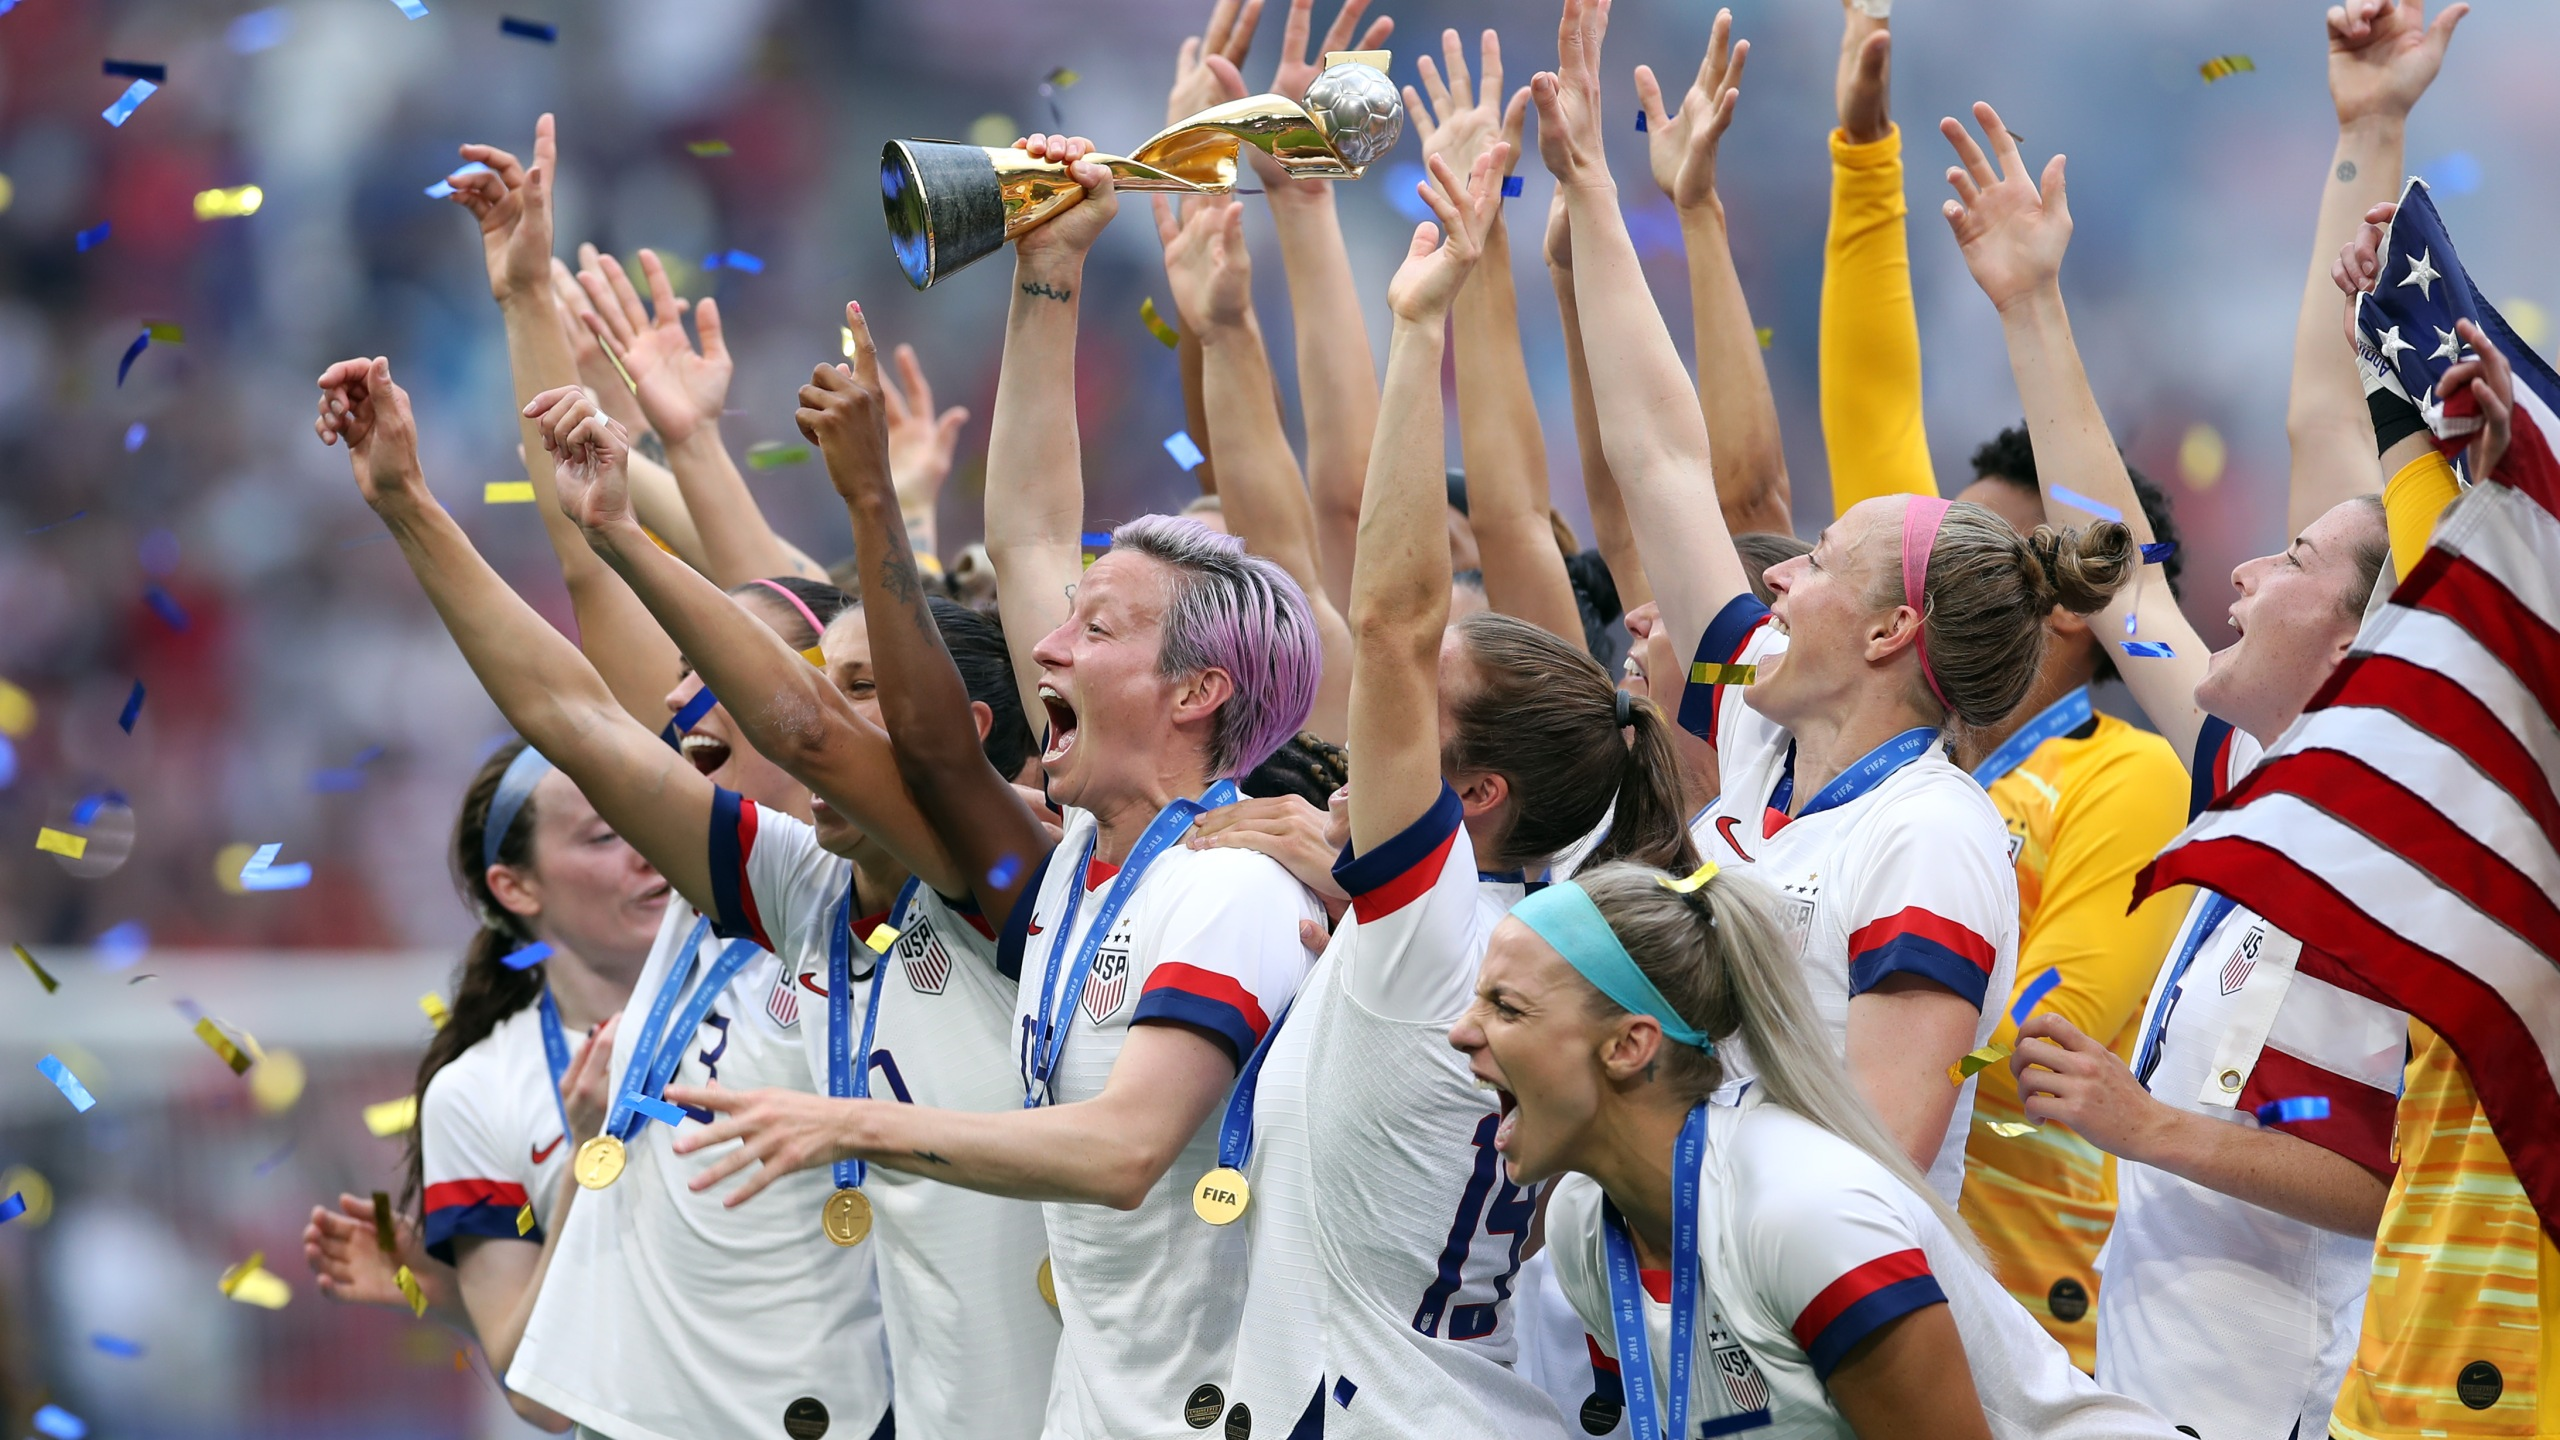 Megan Rapinoe of the USA lifts the FIFA Women's World Cup Trophy following the US victory in the 2019 FIFA Women's World Cup France Final. (Credit: Alex Grimm/Getty Images)